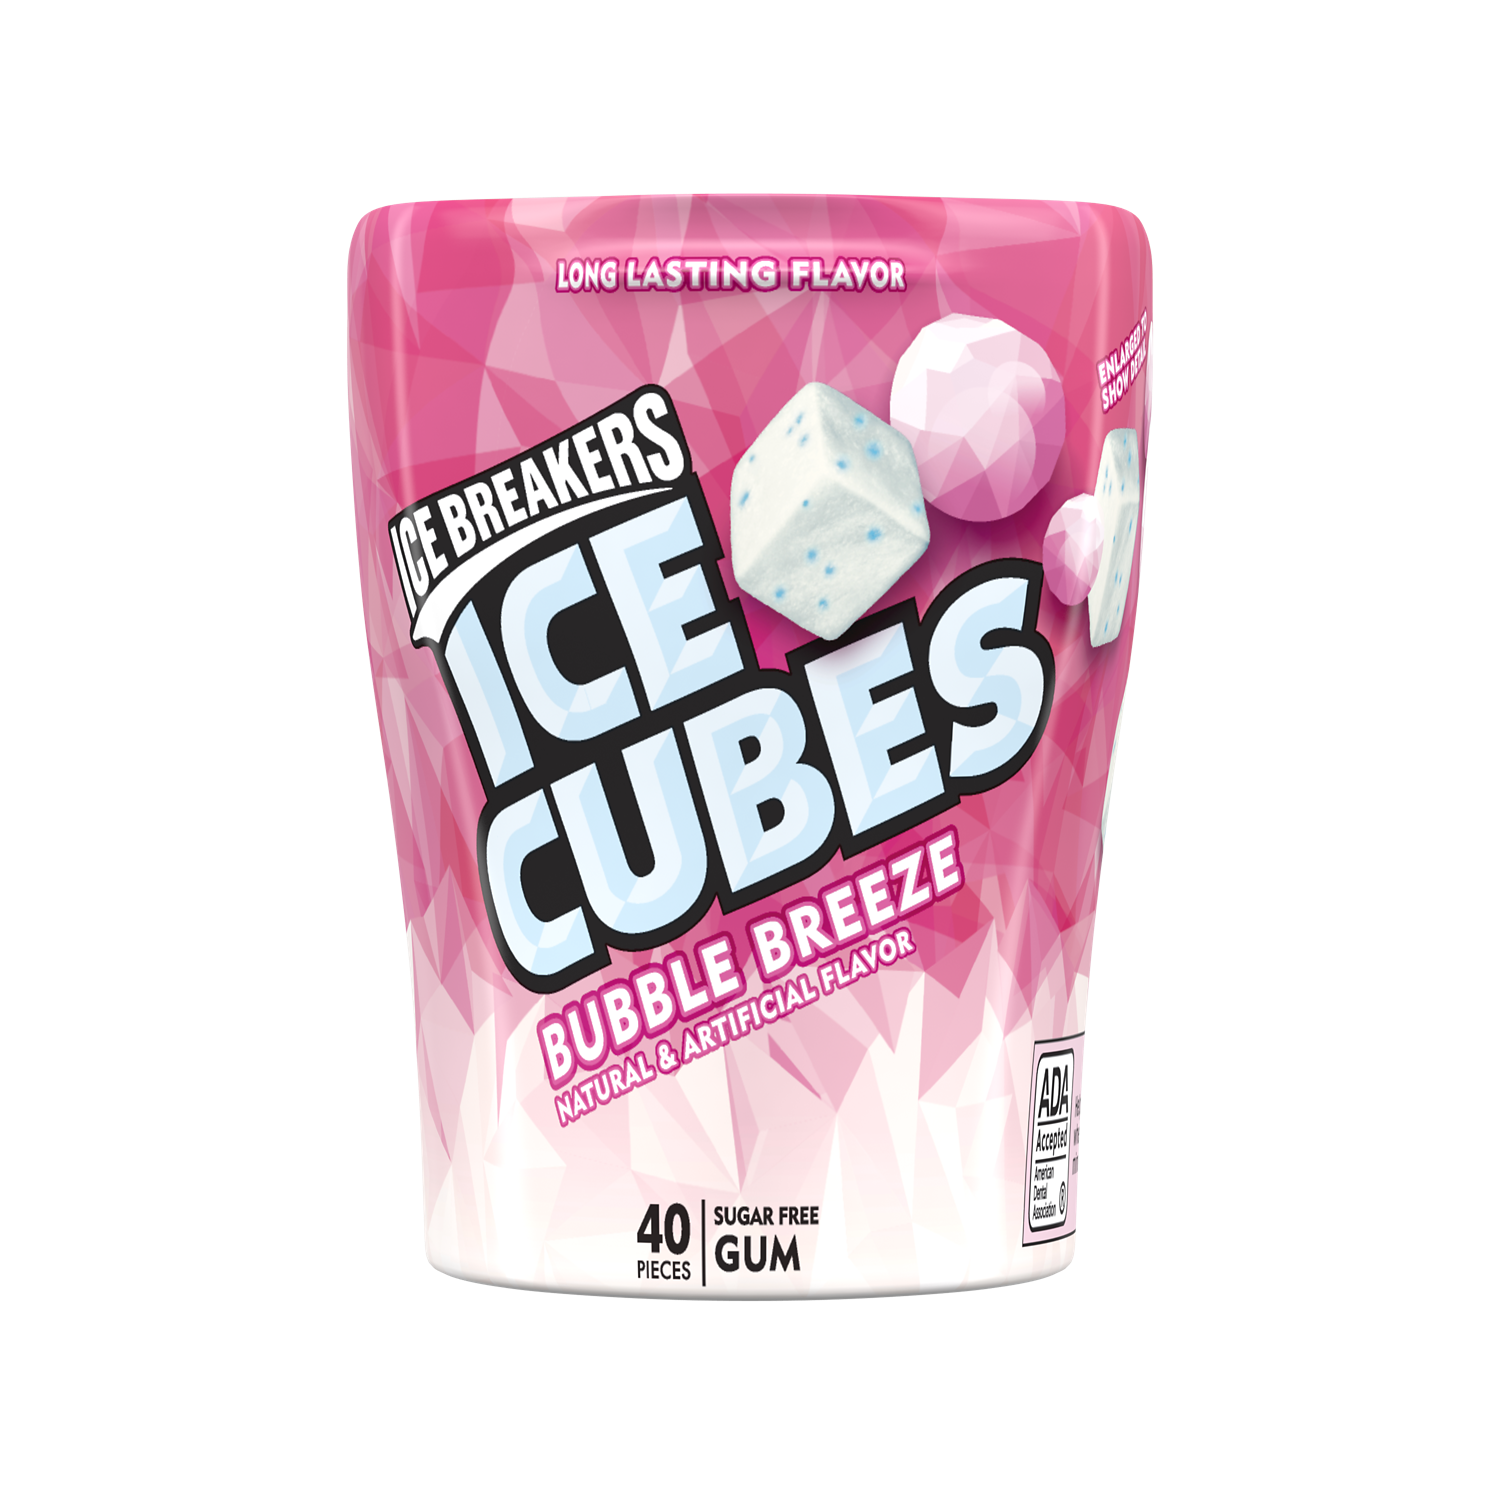 ICE BREAKERS ICE CUBES BUBBLE BREEZE Sugar Free Gum, 3.24 oz bottle, 40 pieces - Front of Package